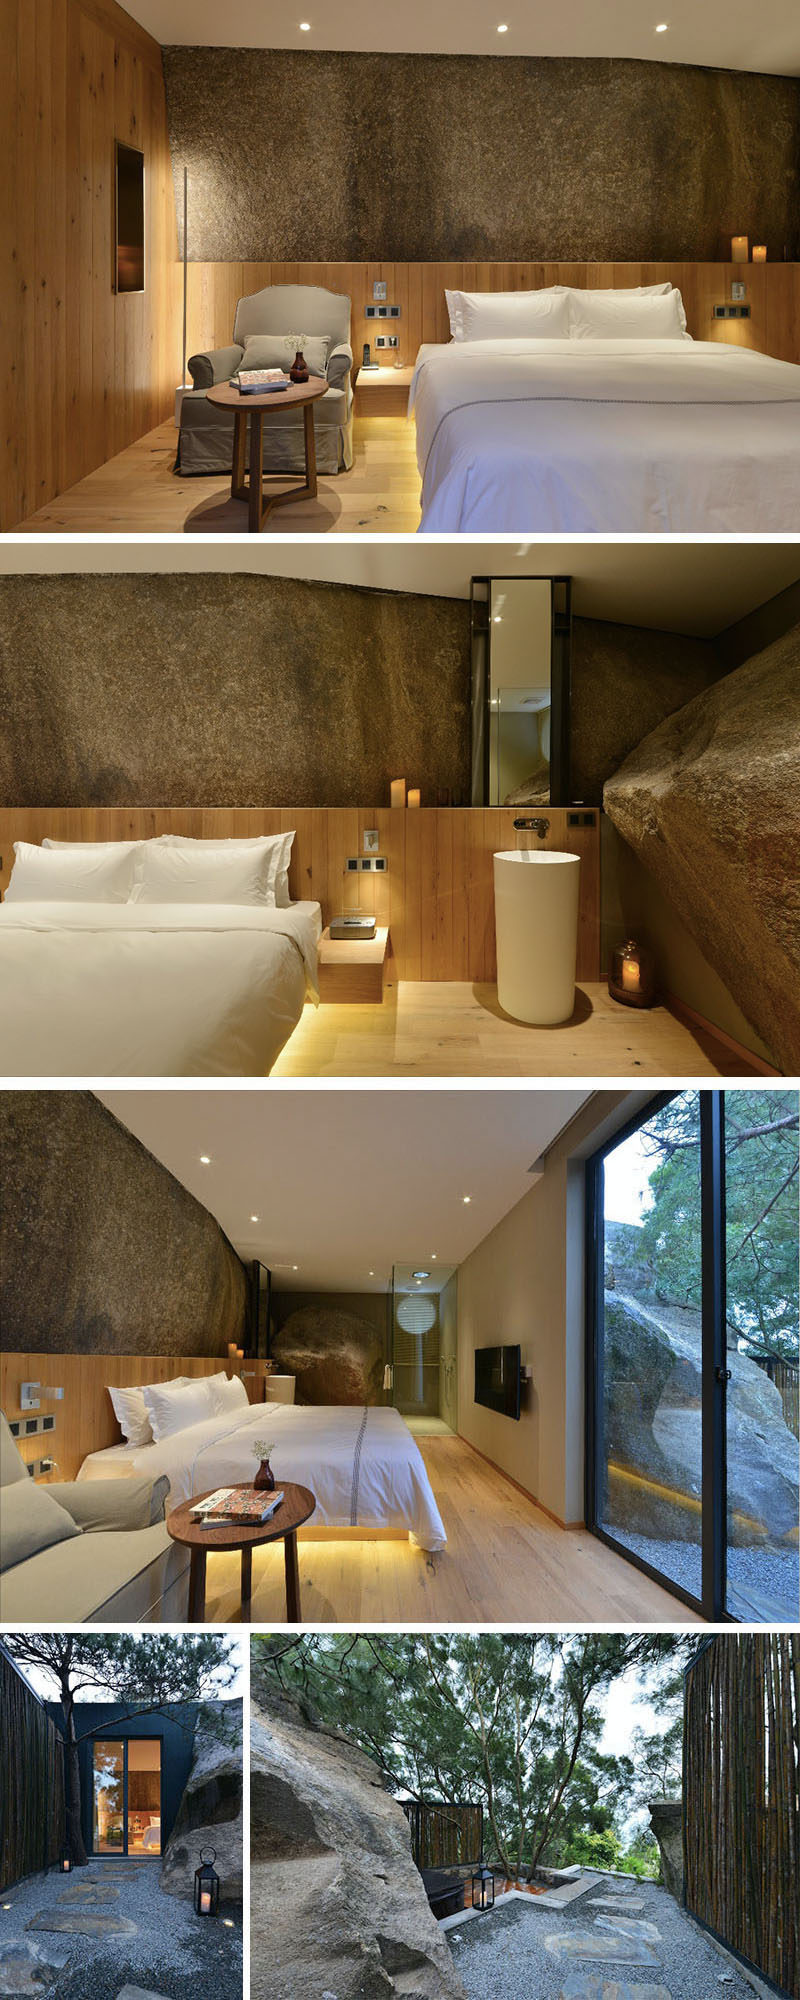 In this hotel room, a large rock wall has been left to create a feature wall, and in the bathroom, a large boulder has been left in the space. Outside, there's a small path that leads to a deck and private spa.